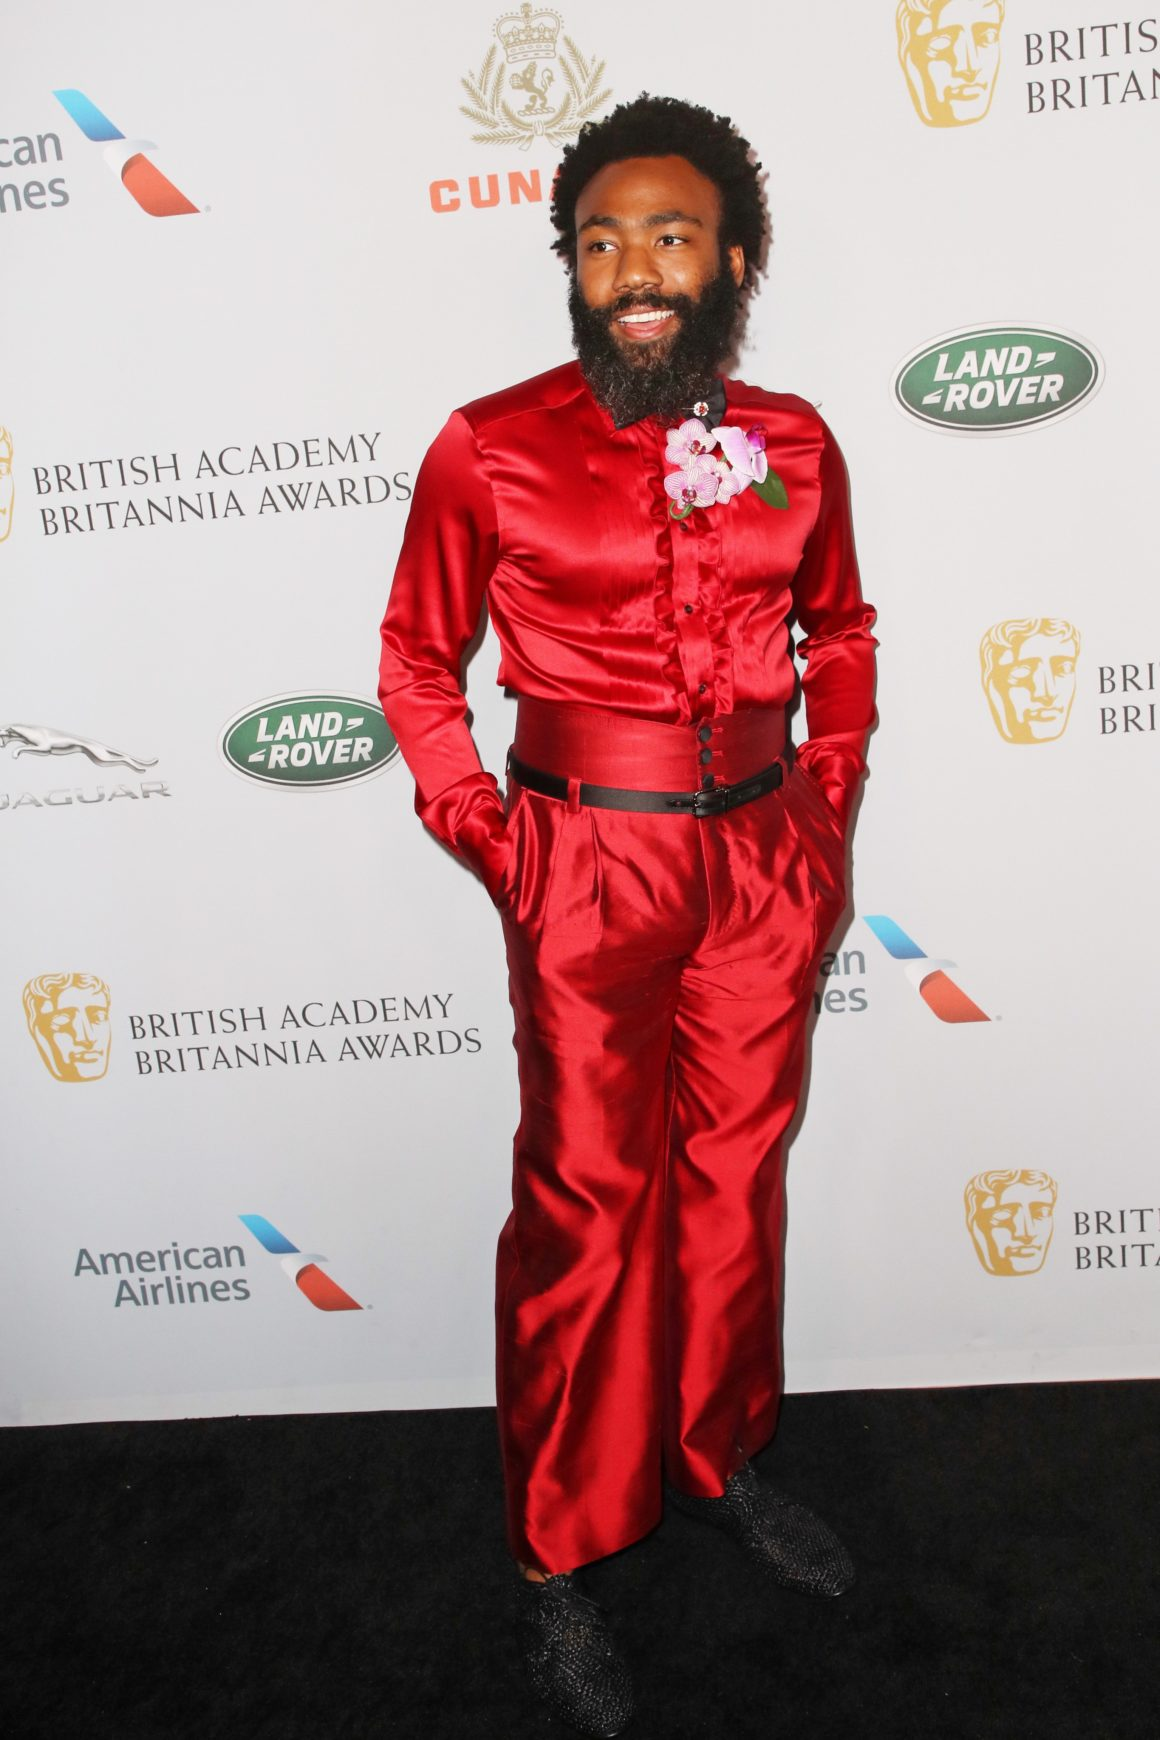 2019 British Academy Britannia Awards presented by American Airlines and Jaguar Land Rover - Arrivals